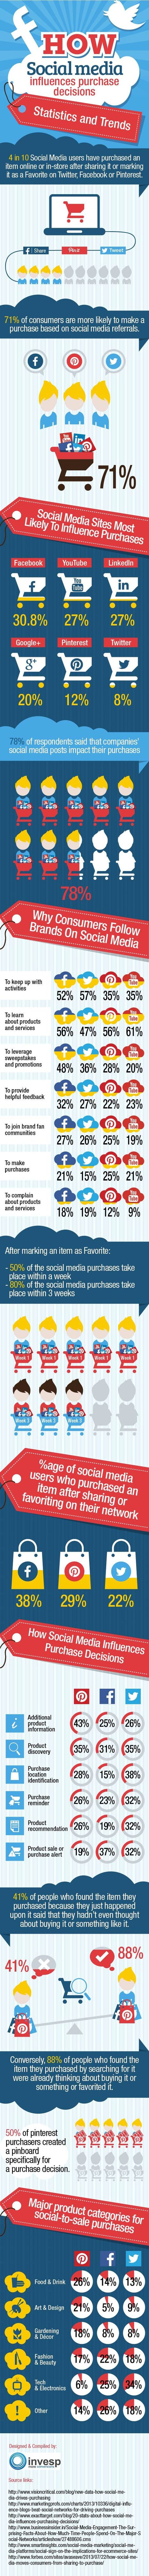 30+ Statistics How Social Media Influence Purchasing Decisions [INFOGRAPHIC] | RMStaples Topics | Scoop.it